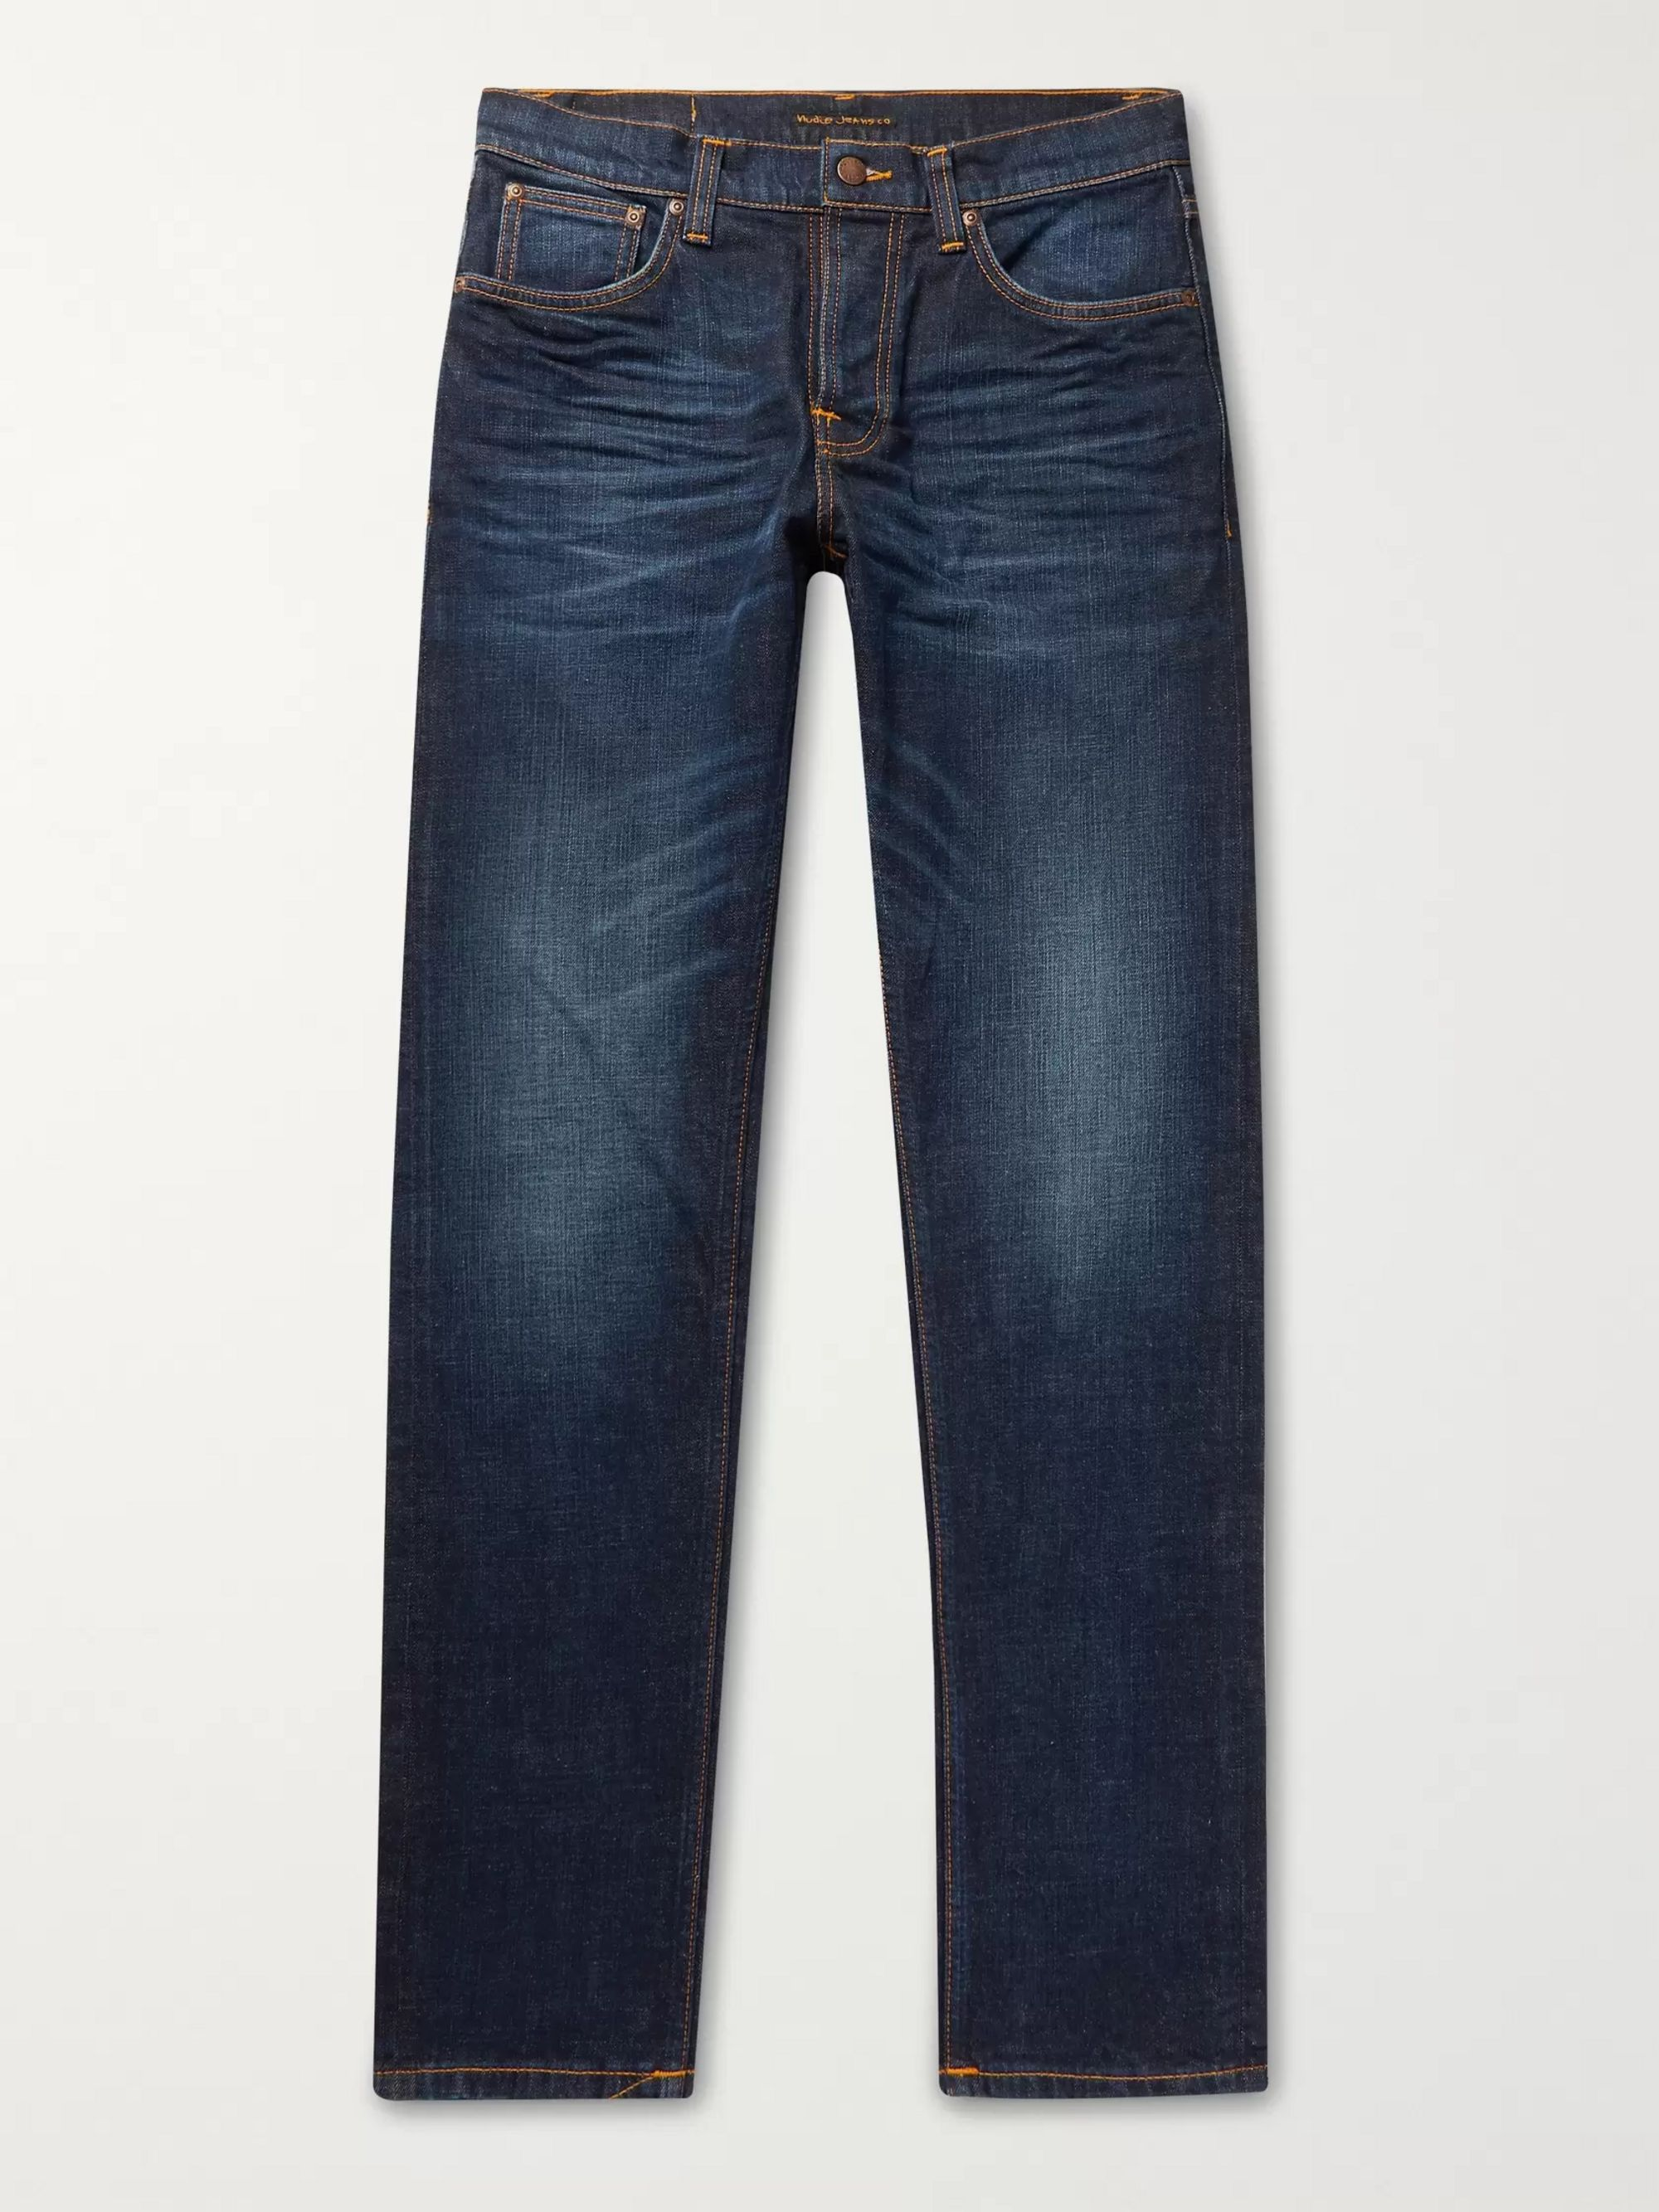 Nudie Jeans Steady Eddie II Slim-Fit Tapered Organic Stretch-Denim Jeans